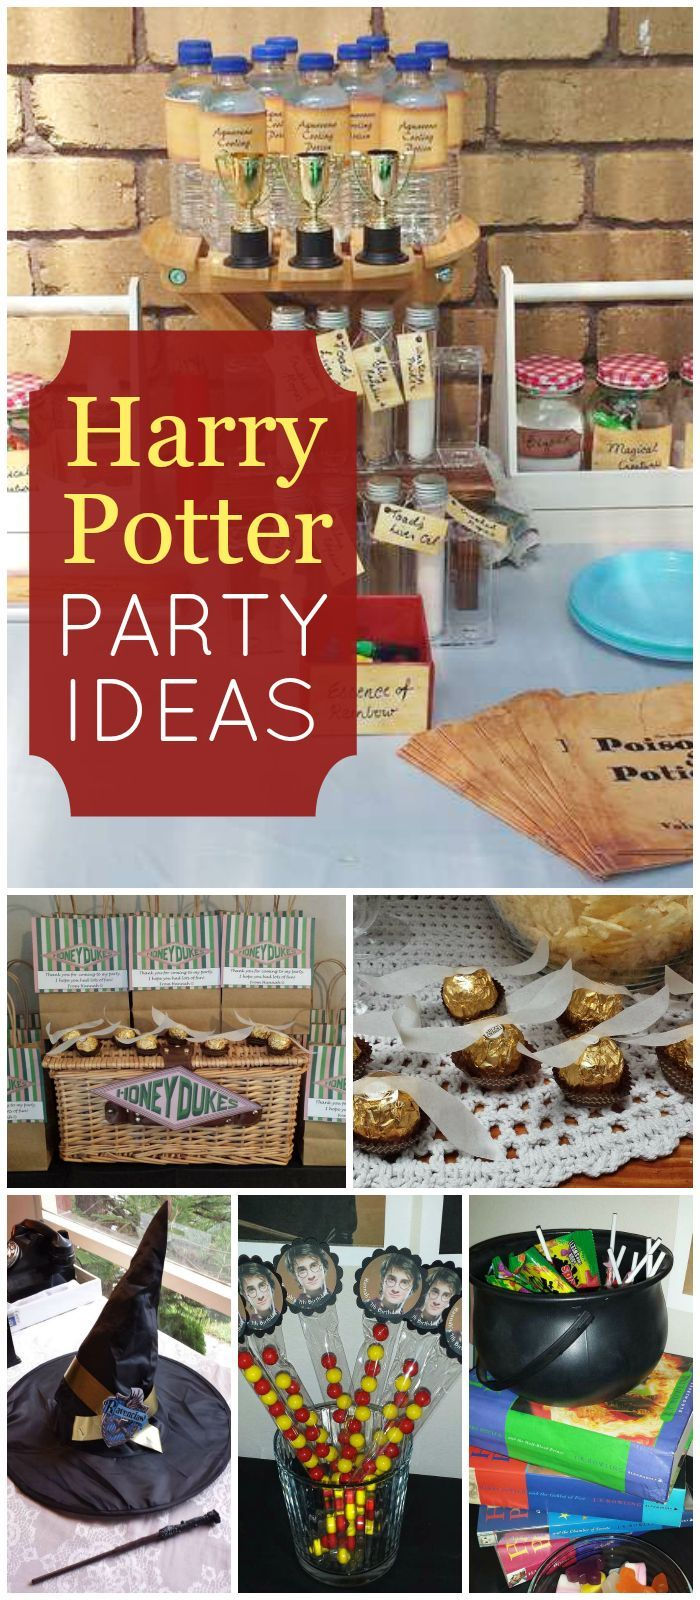 This fun Harry Potter party lets guests mix their own potions! See more party planning ideas at http://CatchMyParty.com!